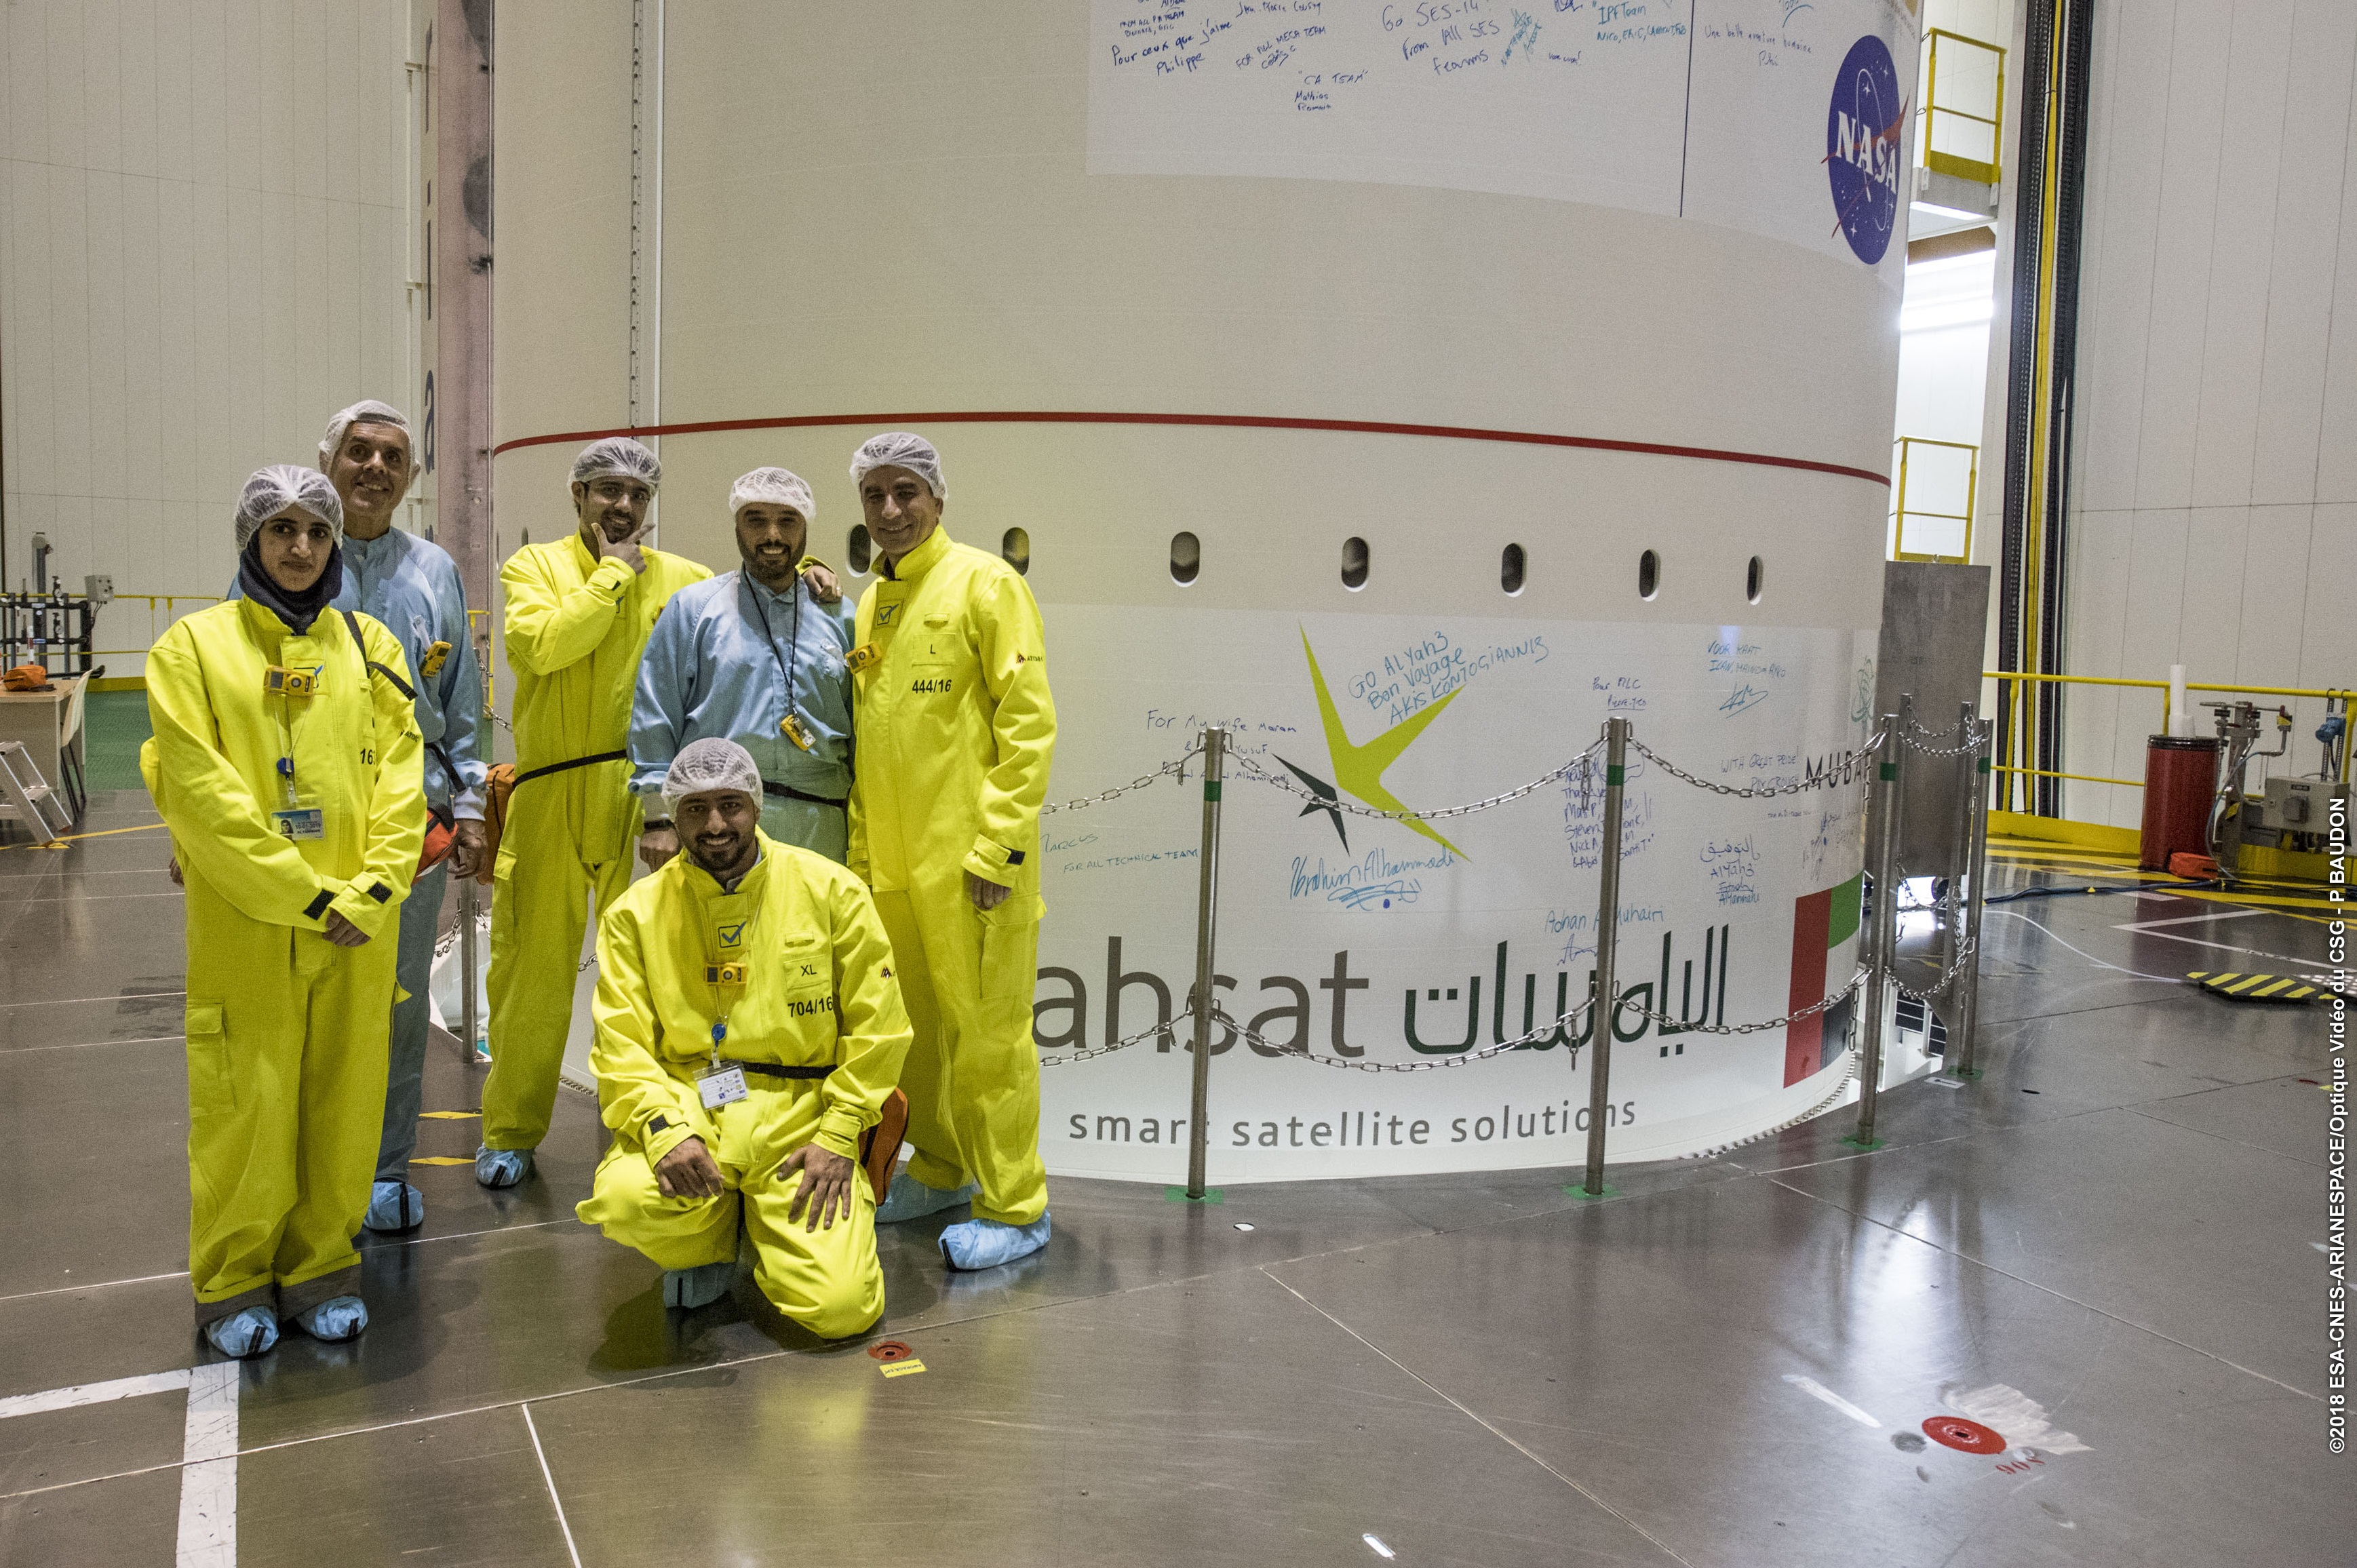 Al Yah 3 signed off for launch